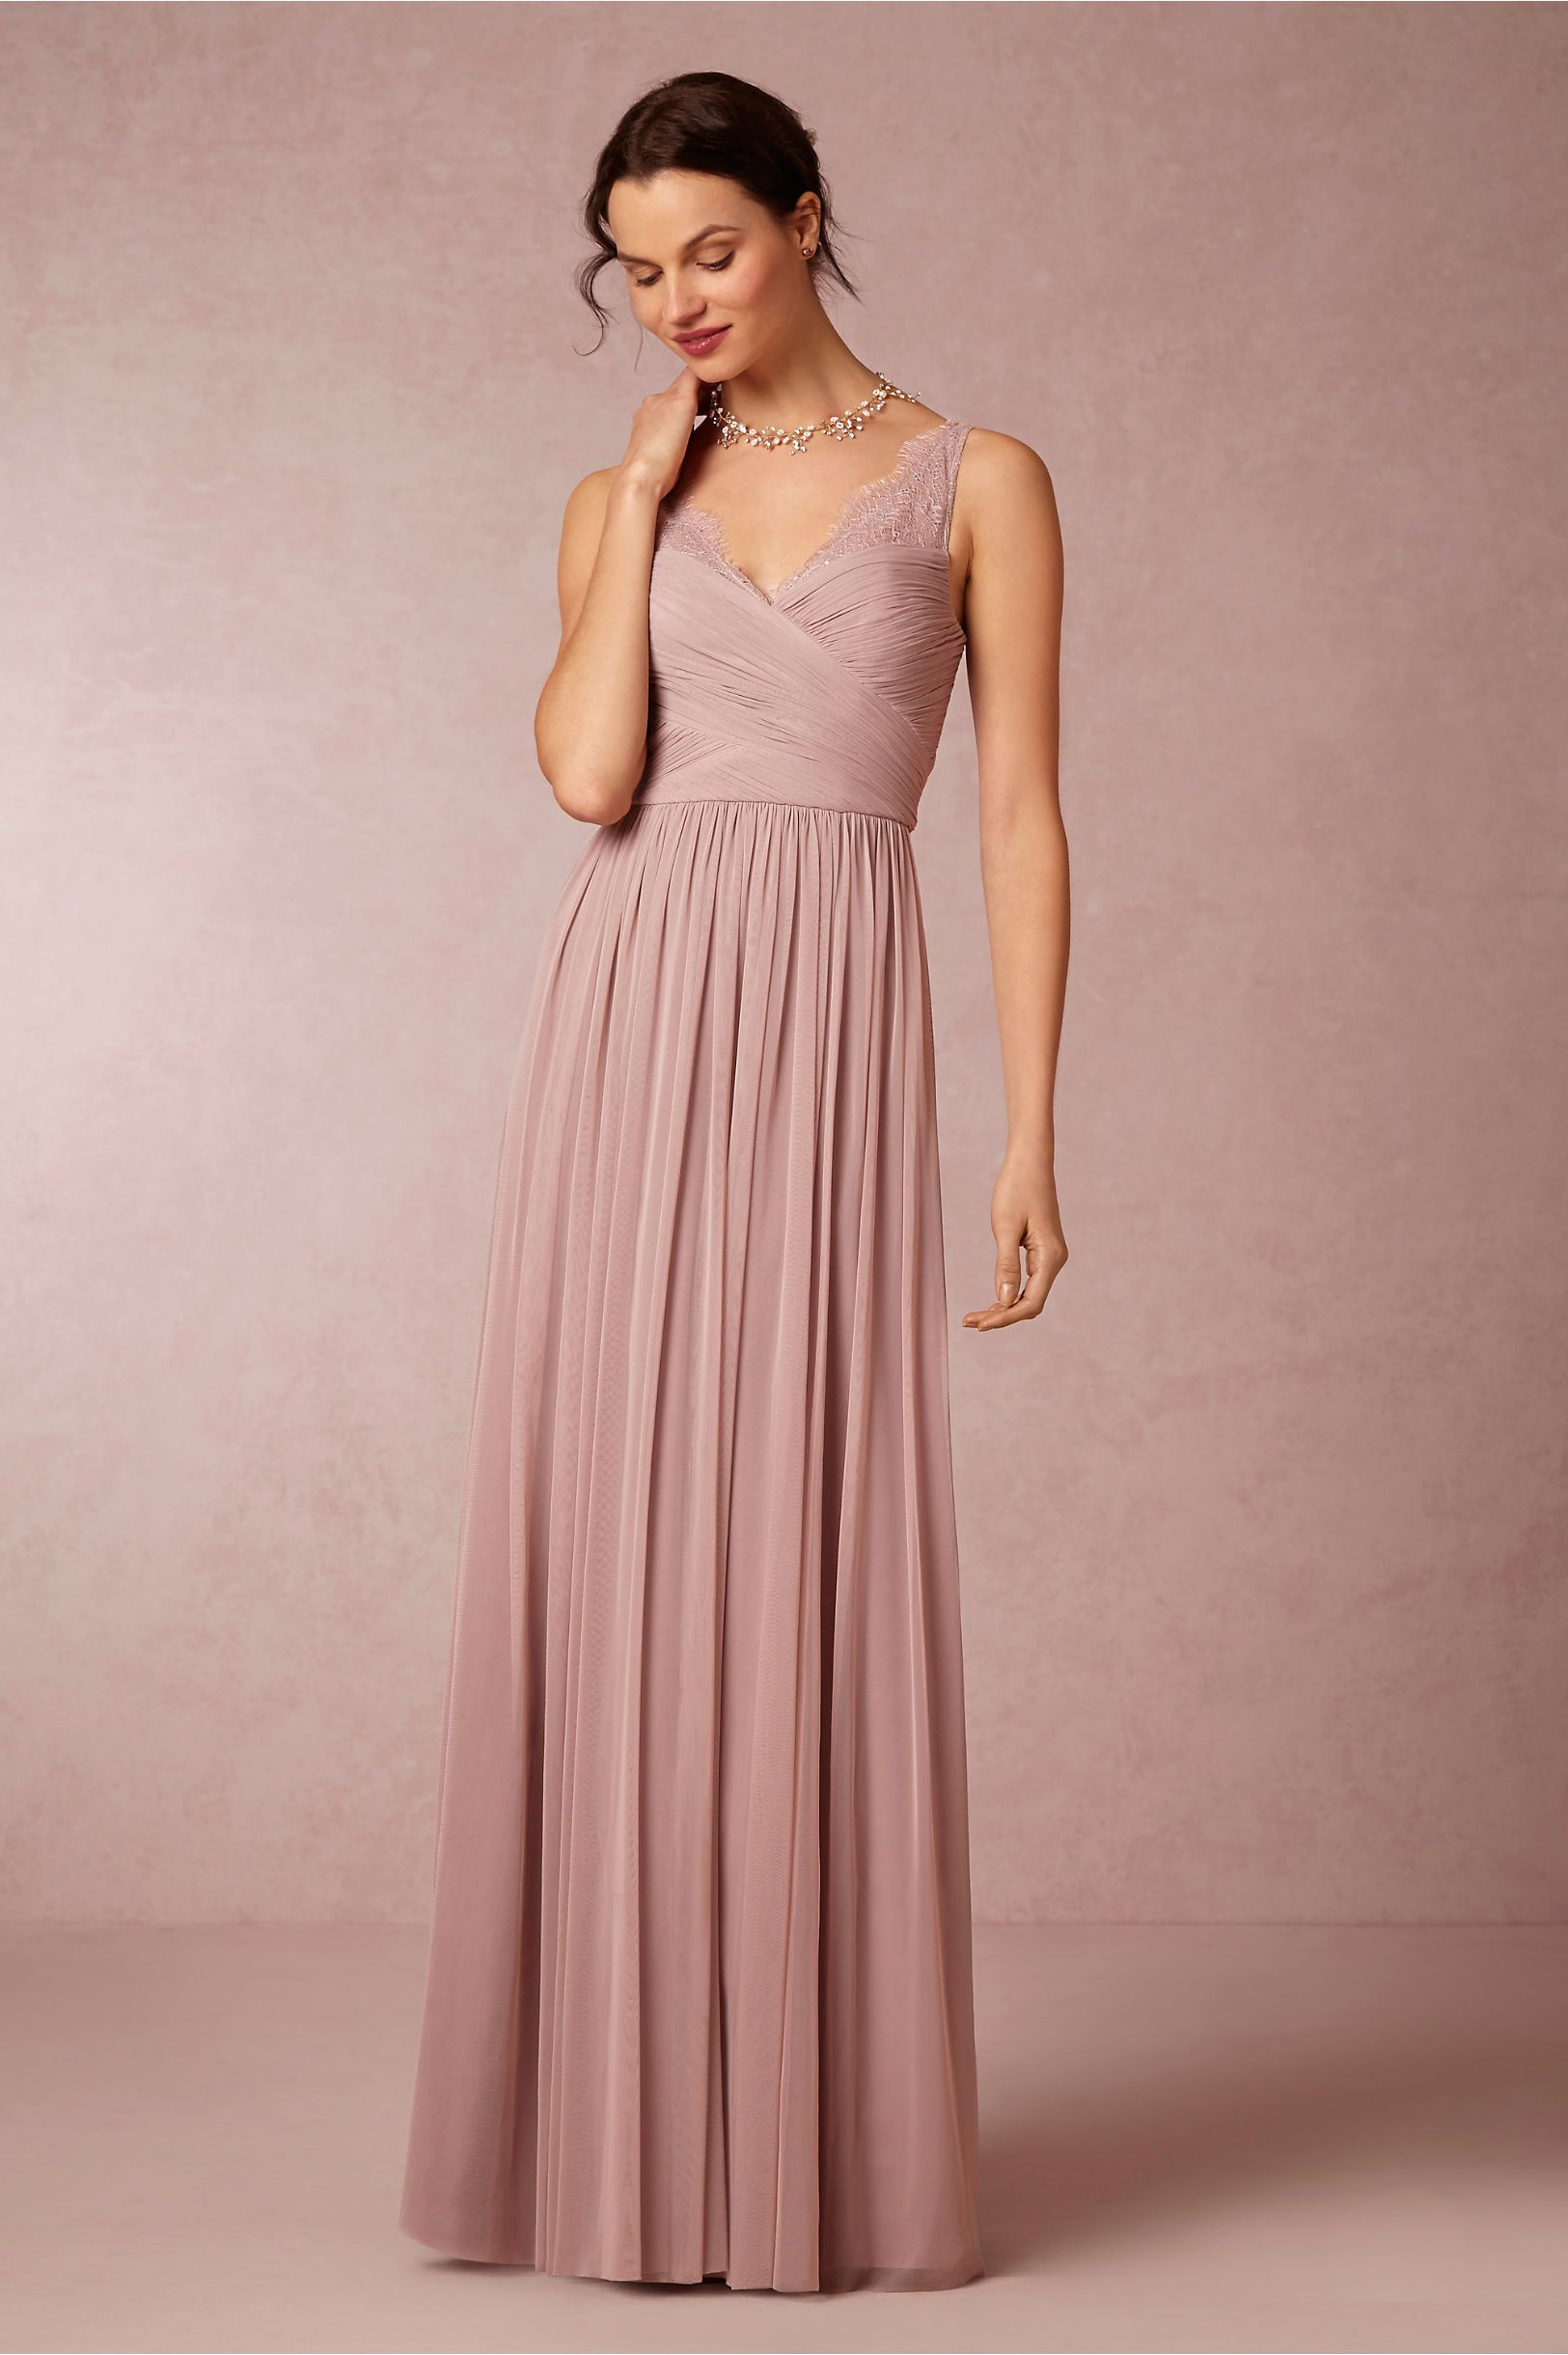 Shop the look wedding ideas with bhldn lavender party guests wedding ideas with bhldn ombrellifo Images